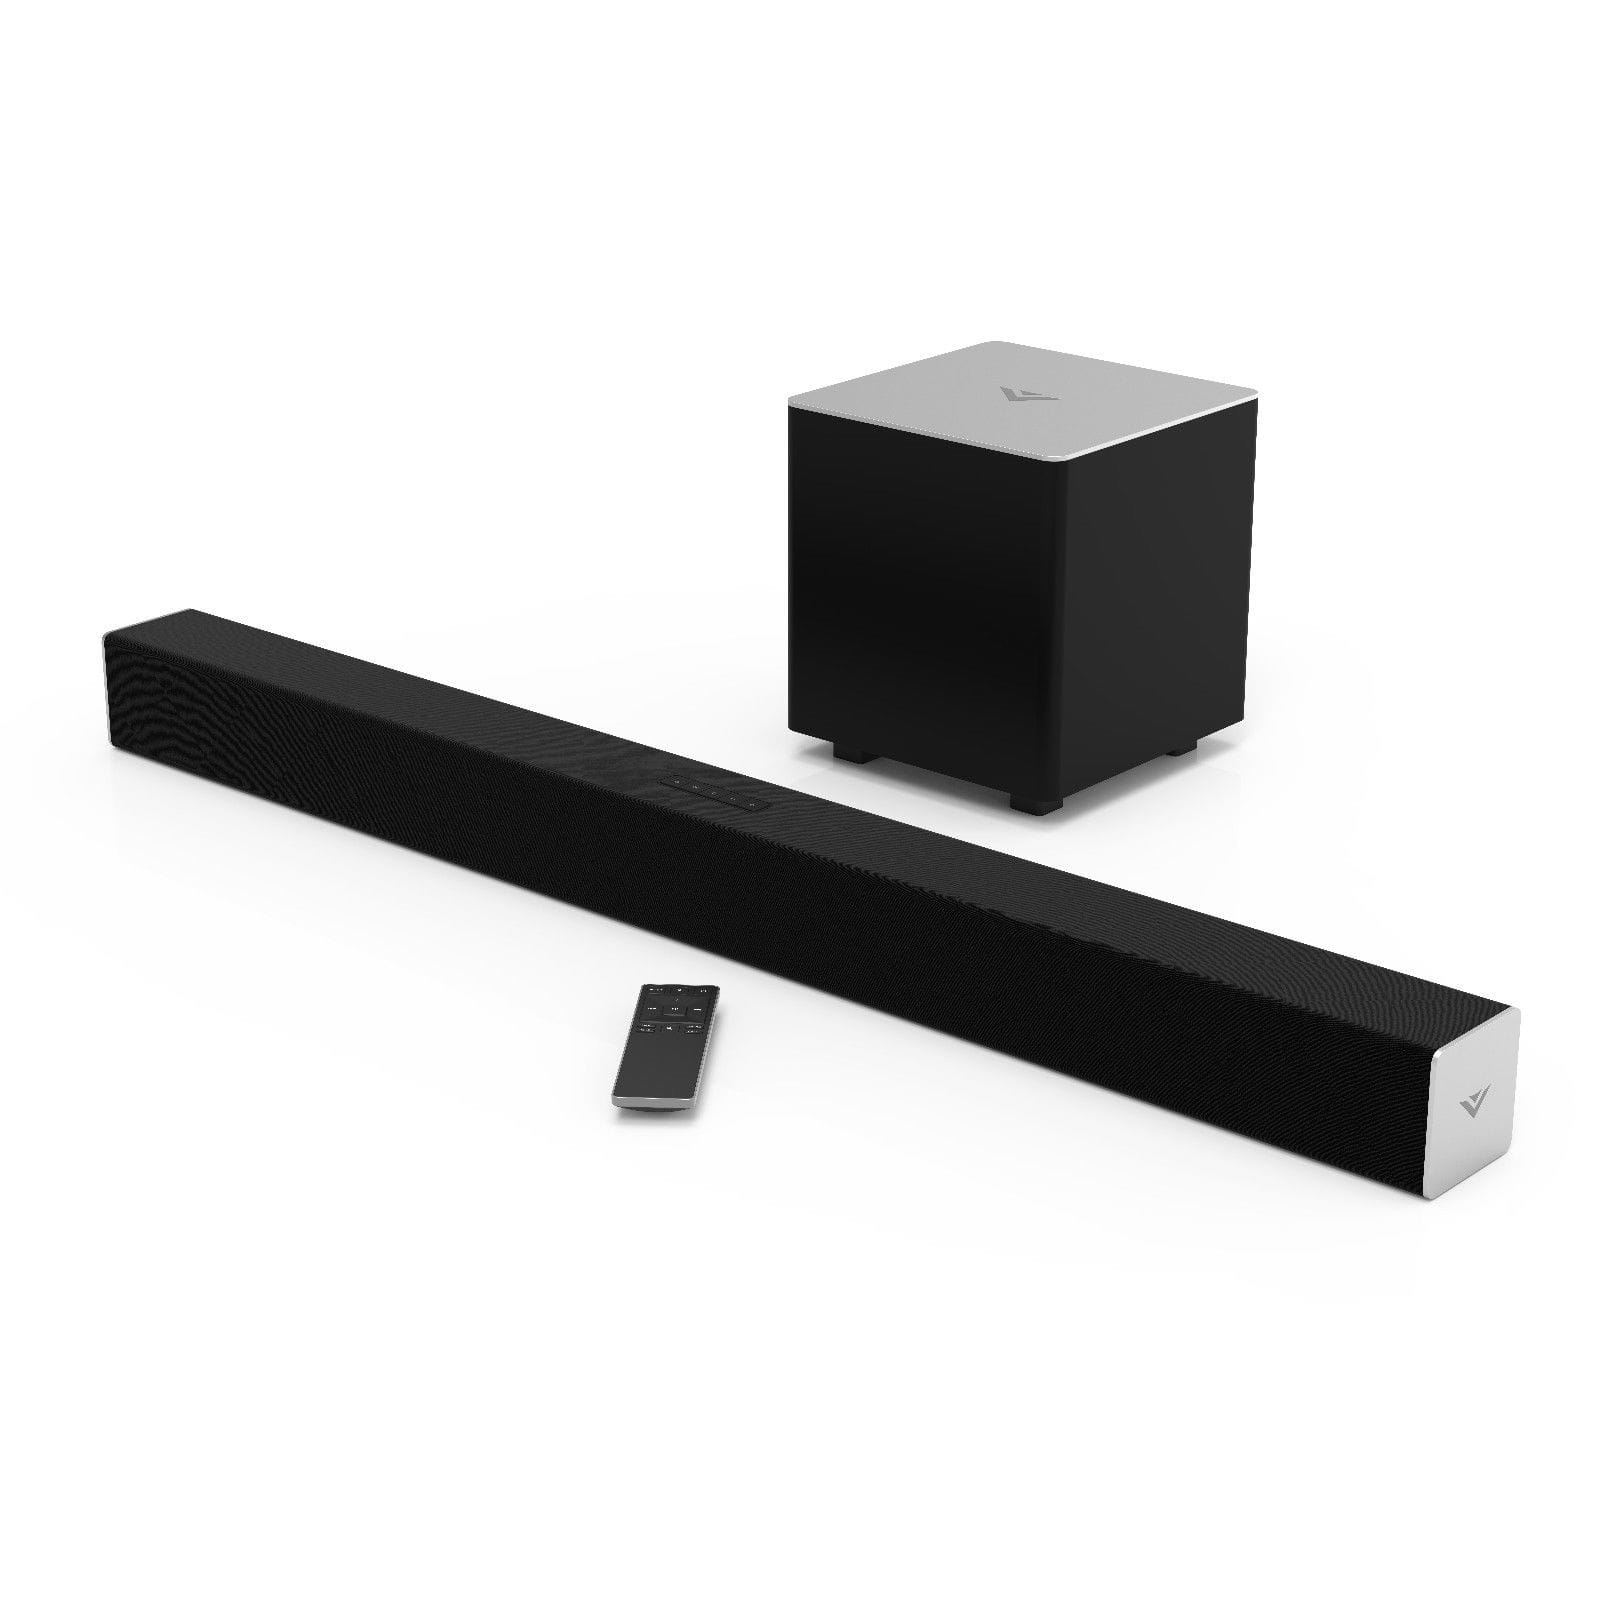 VIZIO SB3821-C6 38-Inch 2.1 Channel Sound Bar with Wireless SubWoofer 109.99